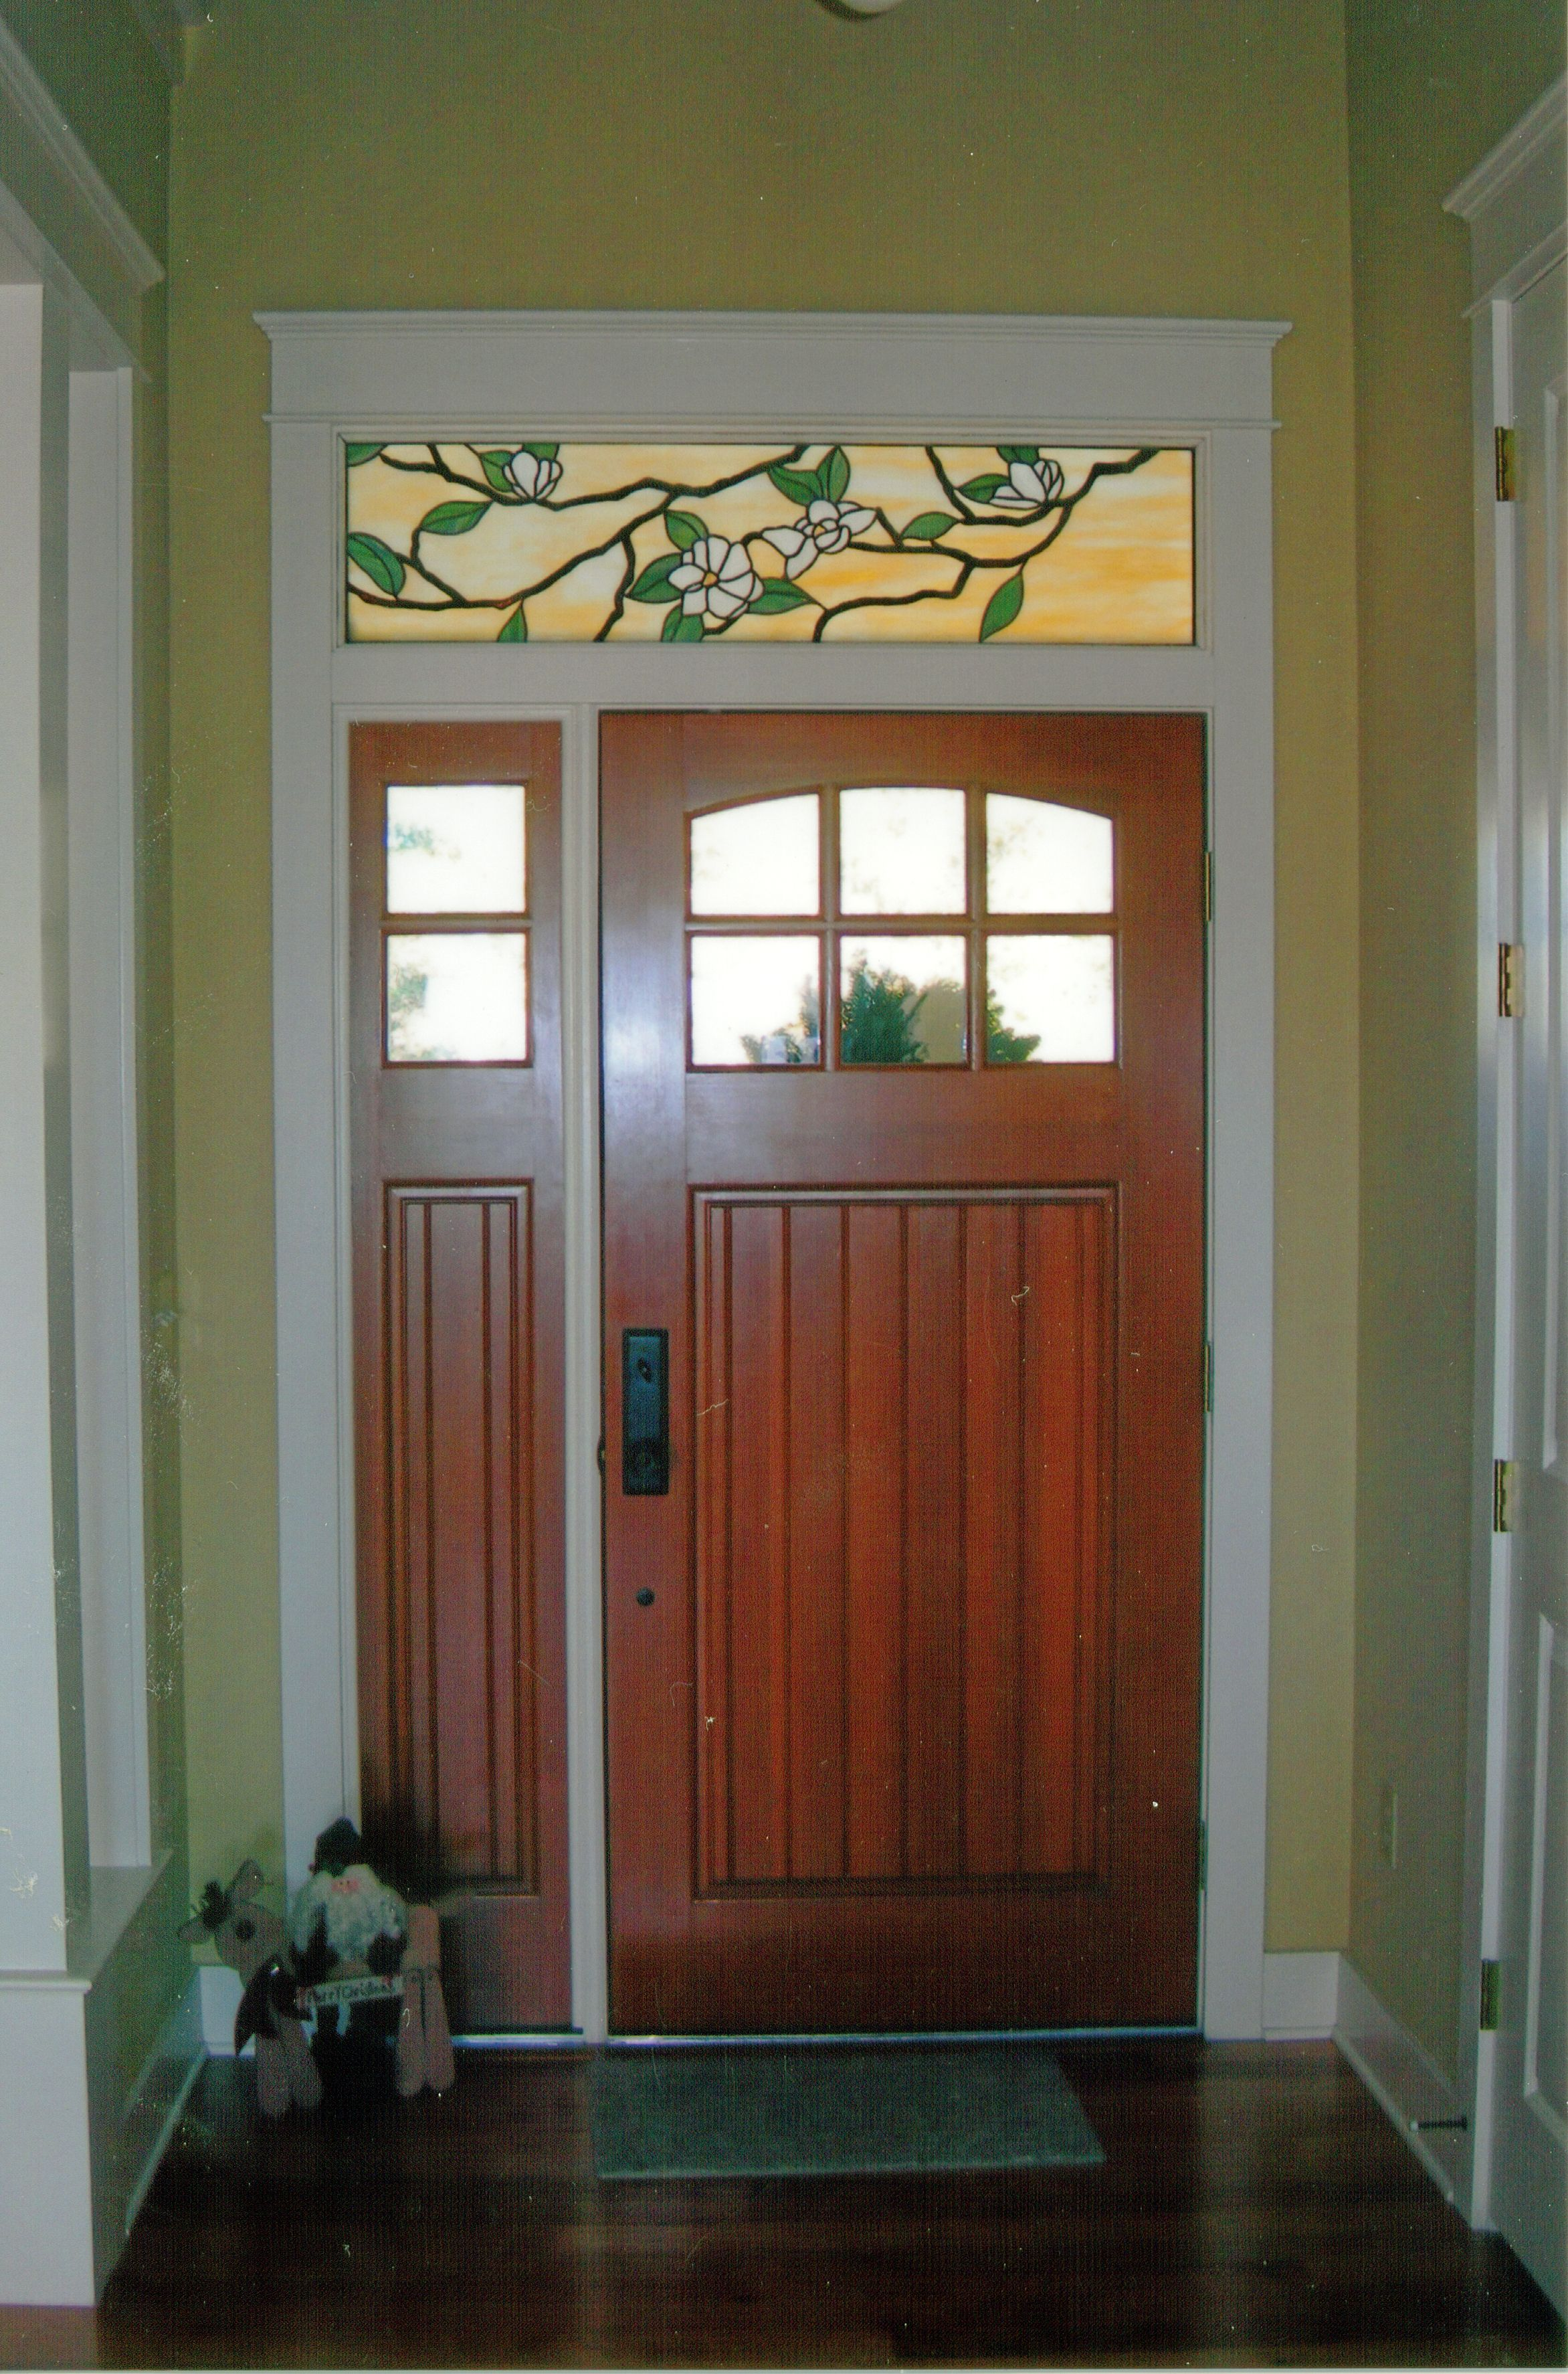 Custom Stained Glass Window Above A Door Magnolia Design Created By Designer Art Glass In